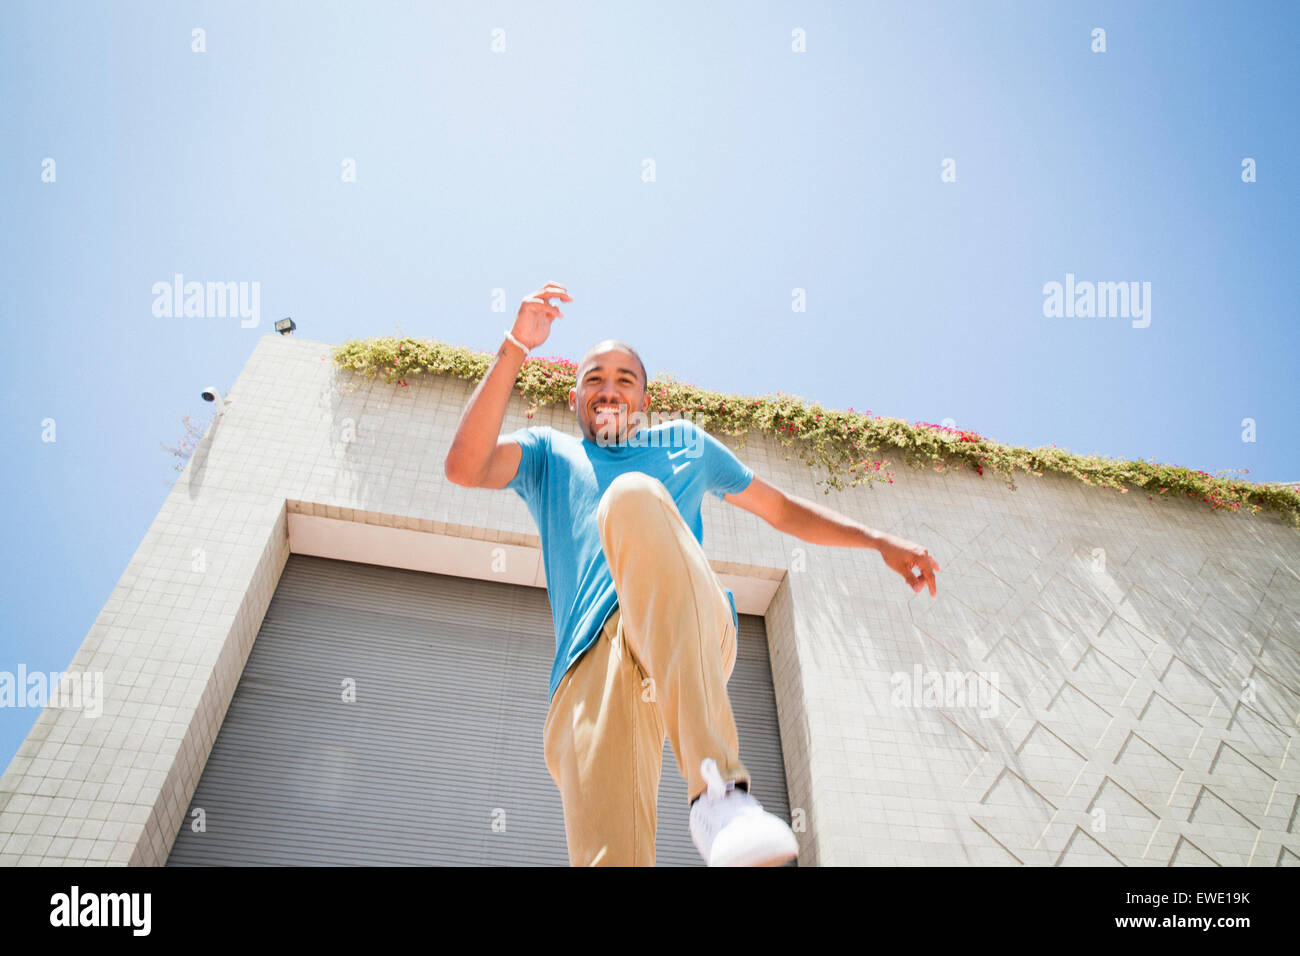 Young man jumping in the air on street parcour parkour - Stock Image